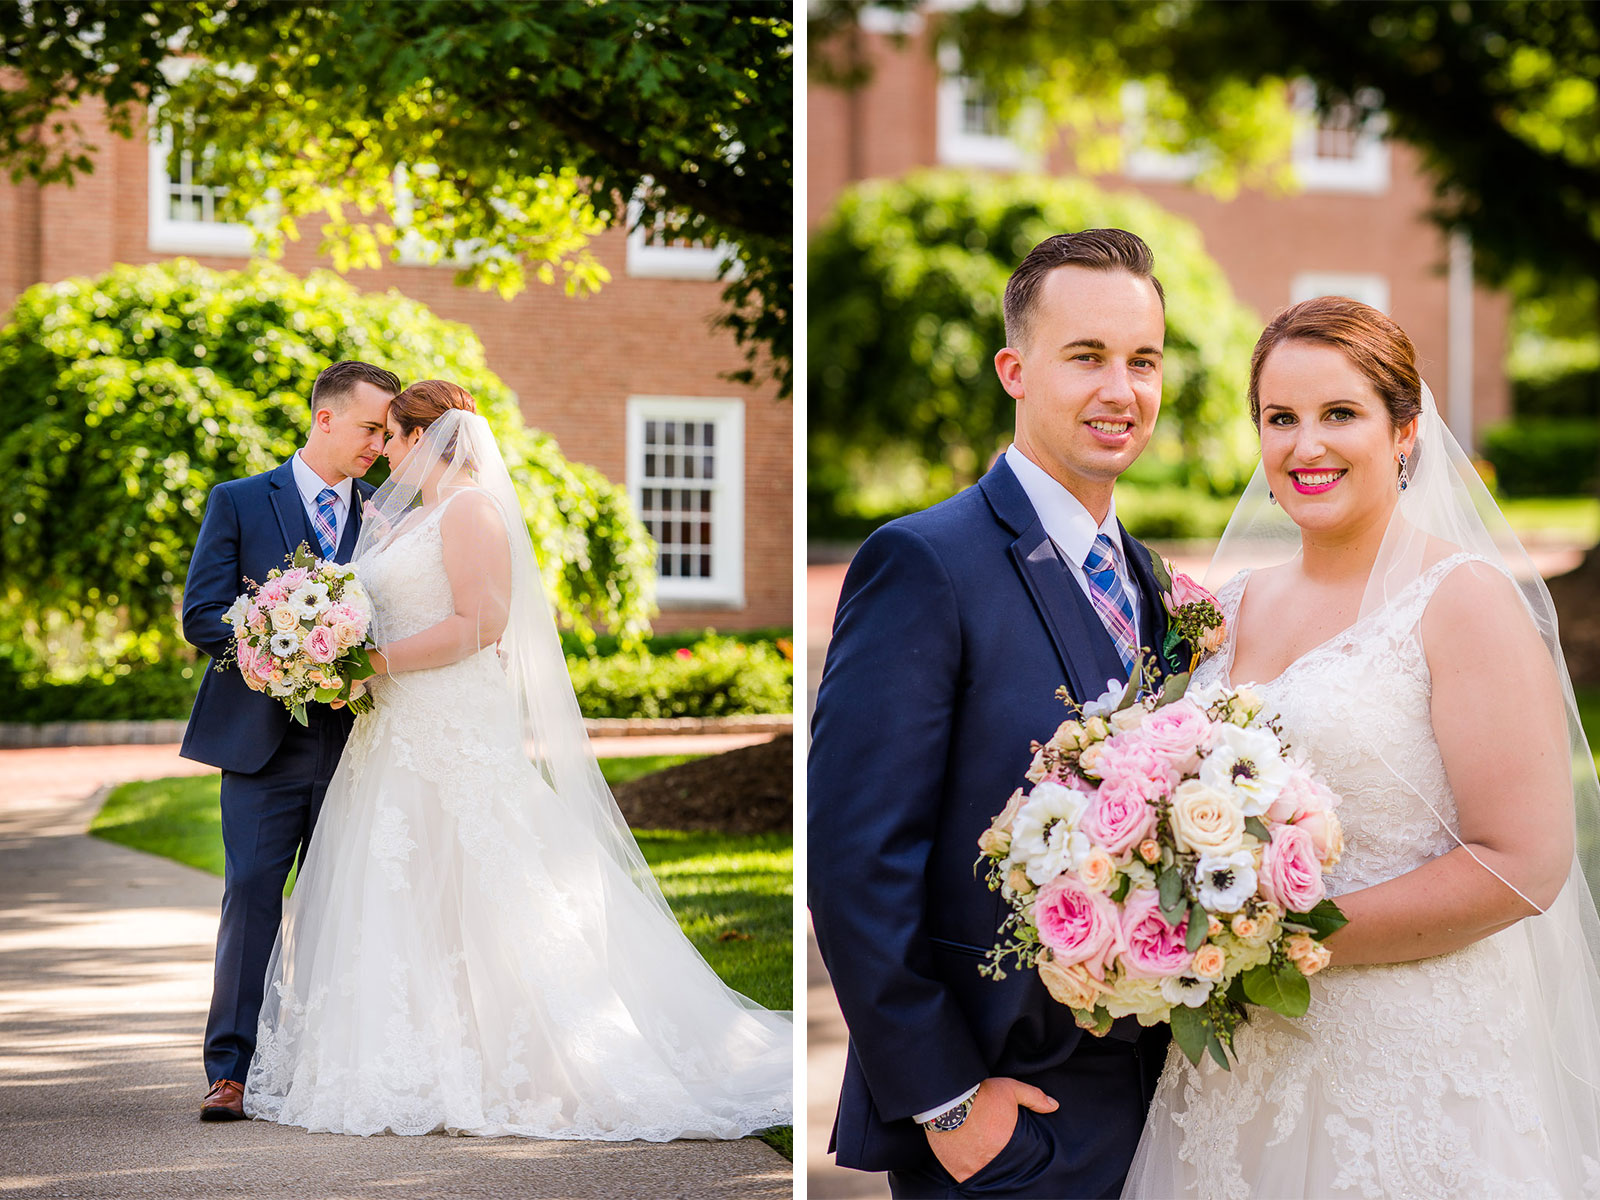 Eric_and_Christy_Photography_Blog_Wedding_Paige_Eric-38-39